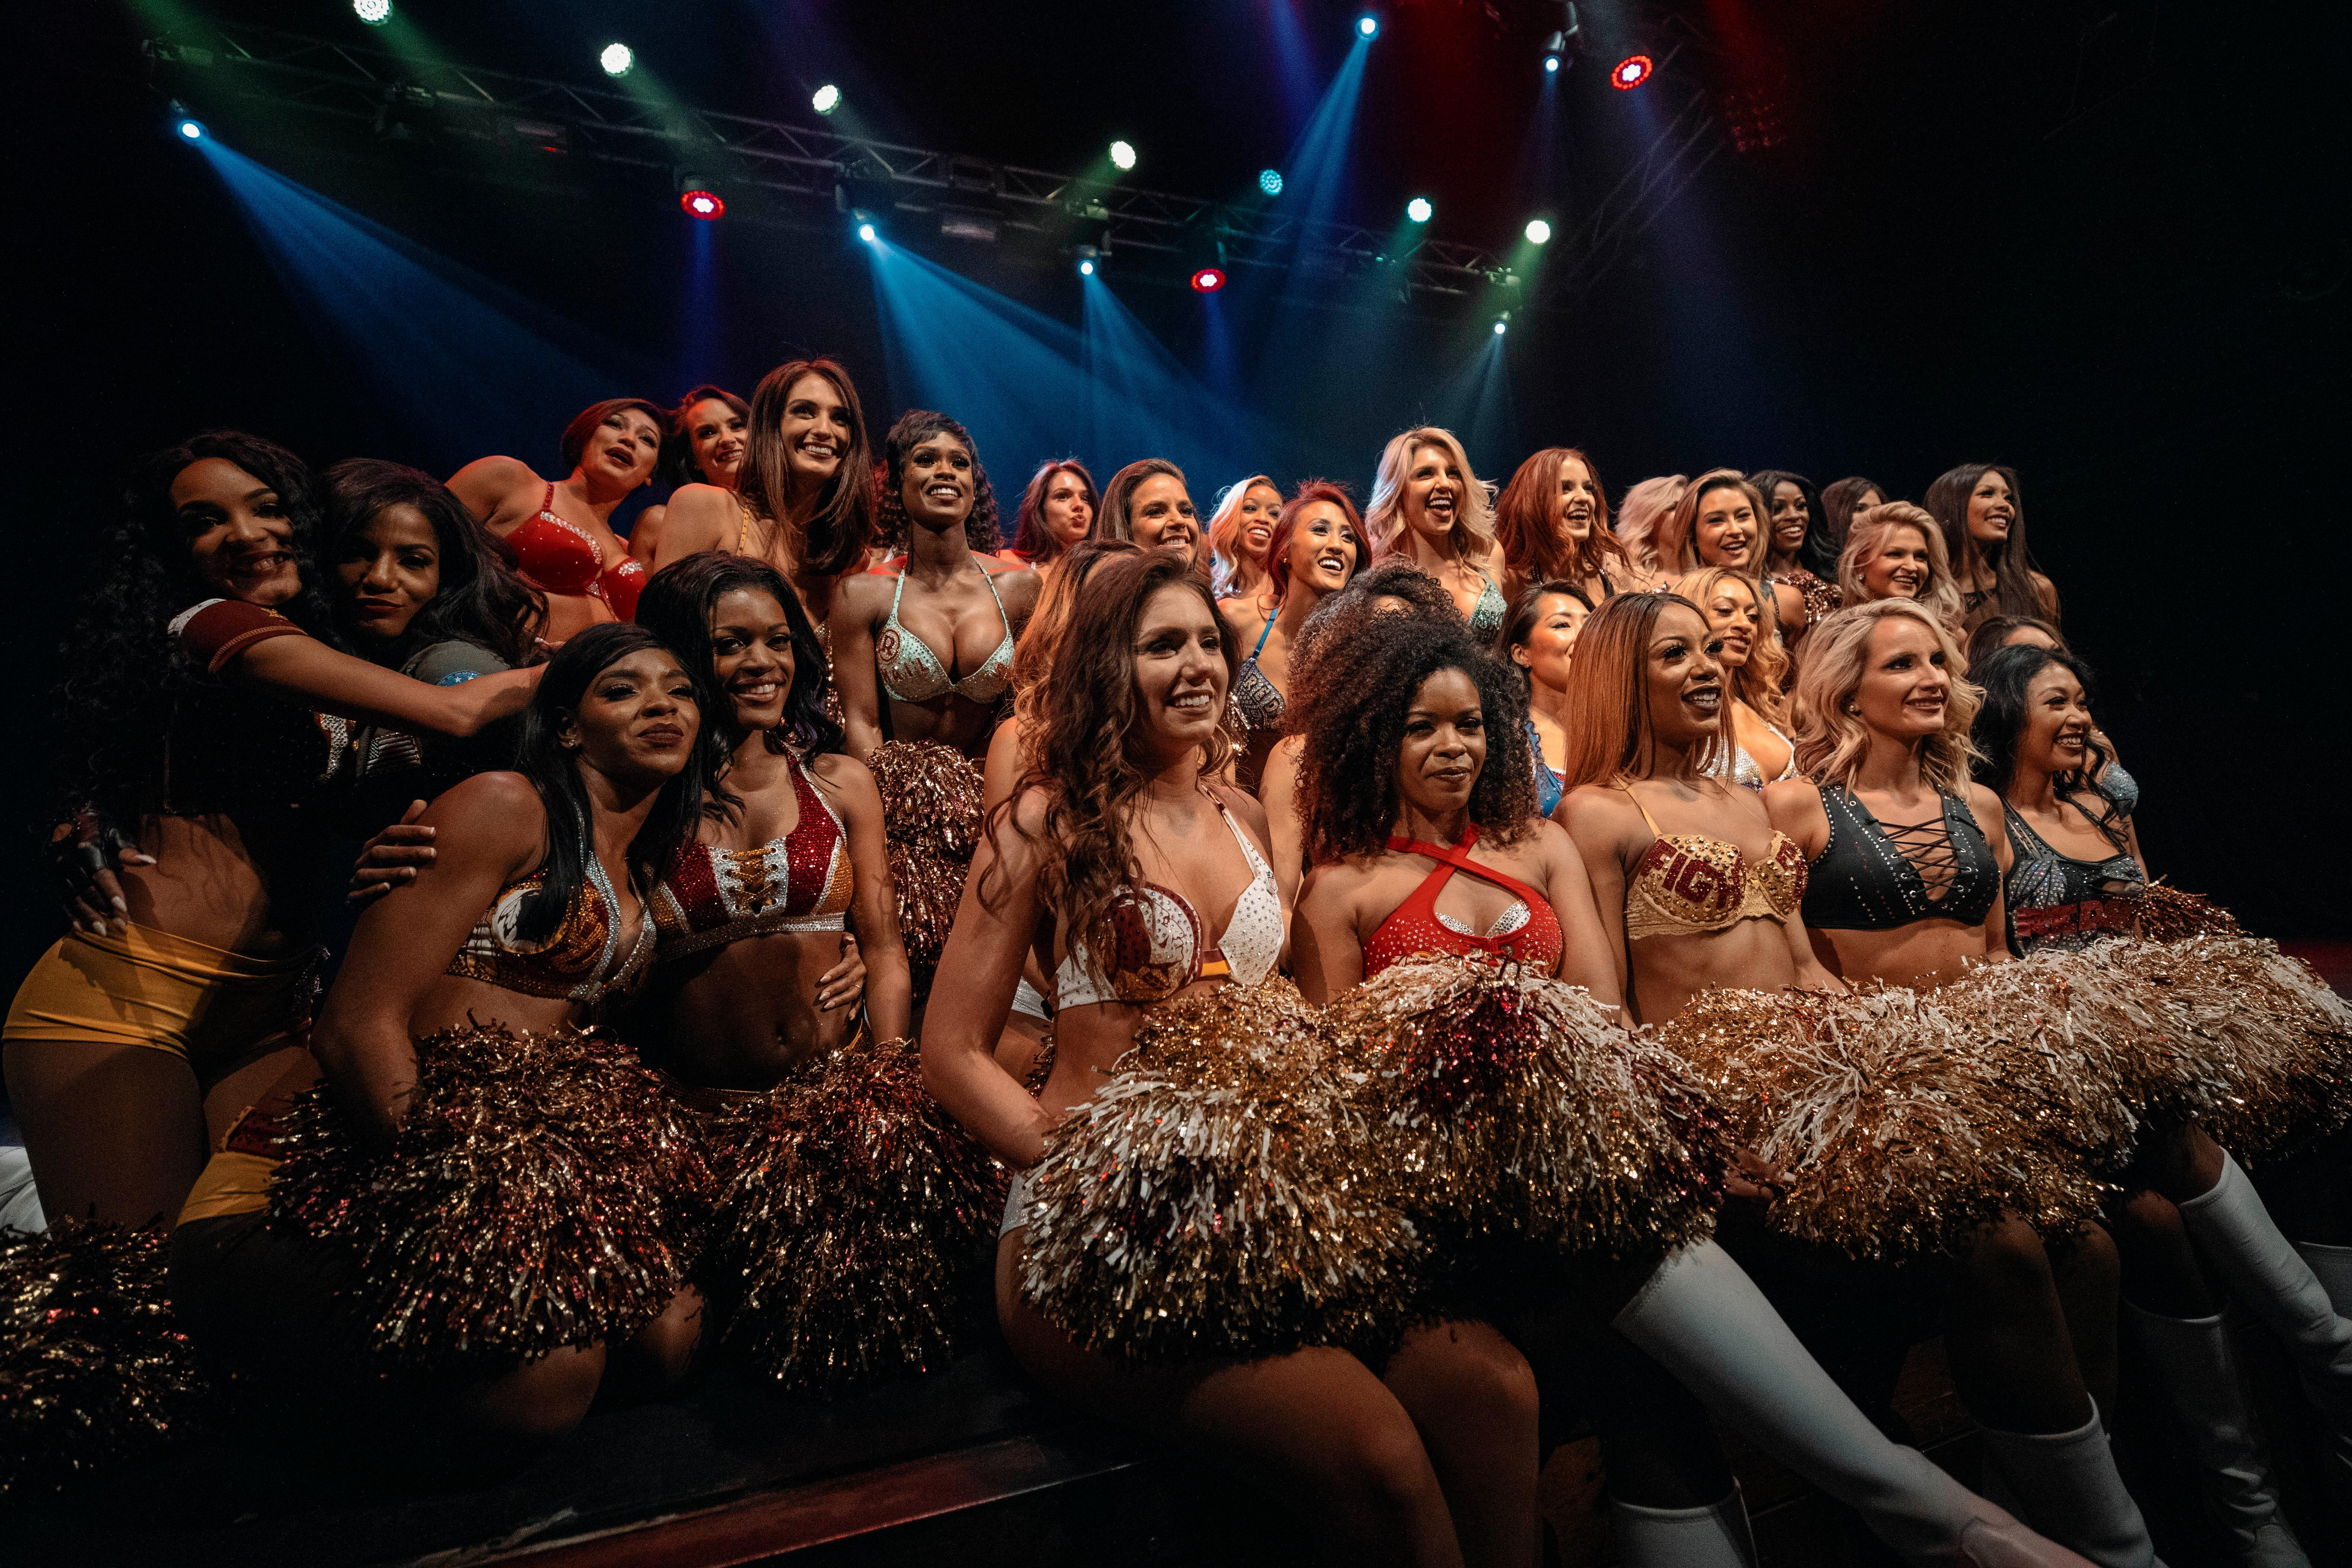 The oldest cheerleading team in football is back at it again for the 2019 season. The Washington Redskins cheerleading team held their final audition at the Howard Theater on Friday, April 5, with 36 women making the team. Without further ado, meet your 2019 First Ladies of Football! (Image: Colin J. Mason/ DC Refined)